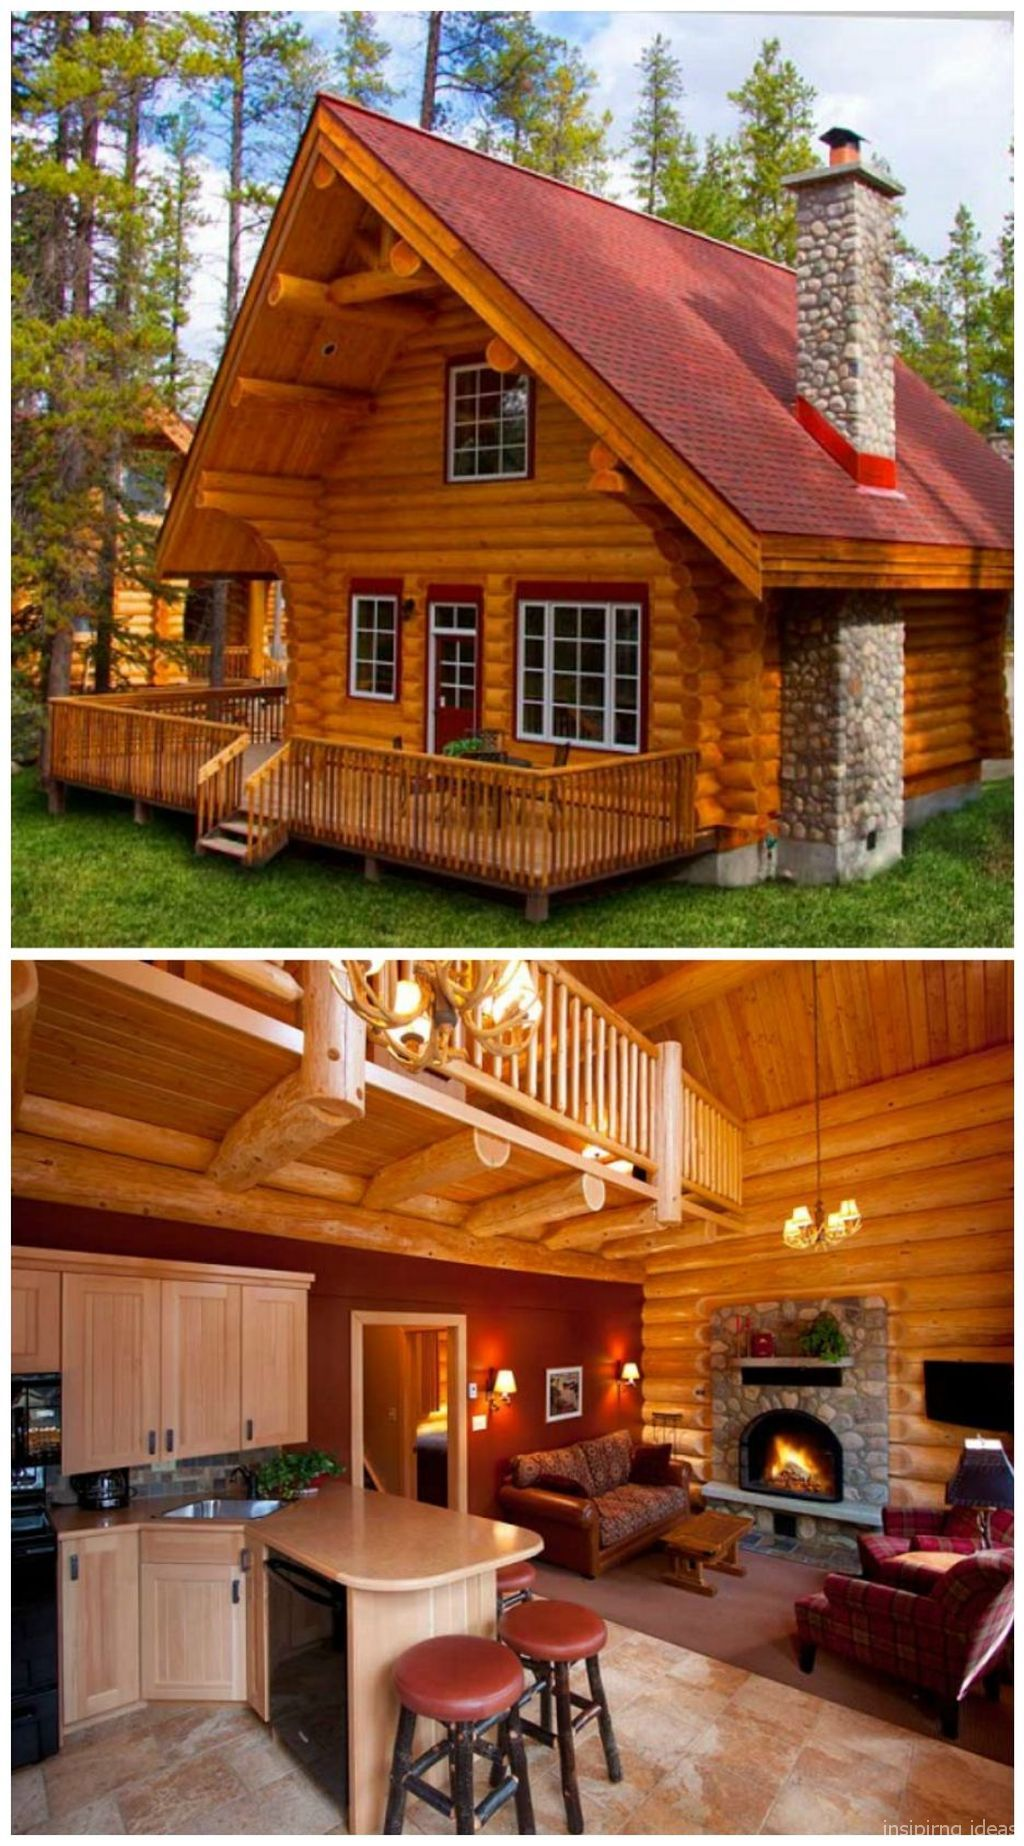 16 Rustic Log Cabin Homes Design Ideas Log Cabin Homes Log Homes Cabin Homes